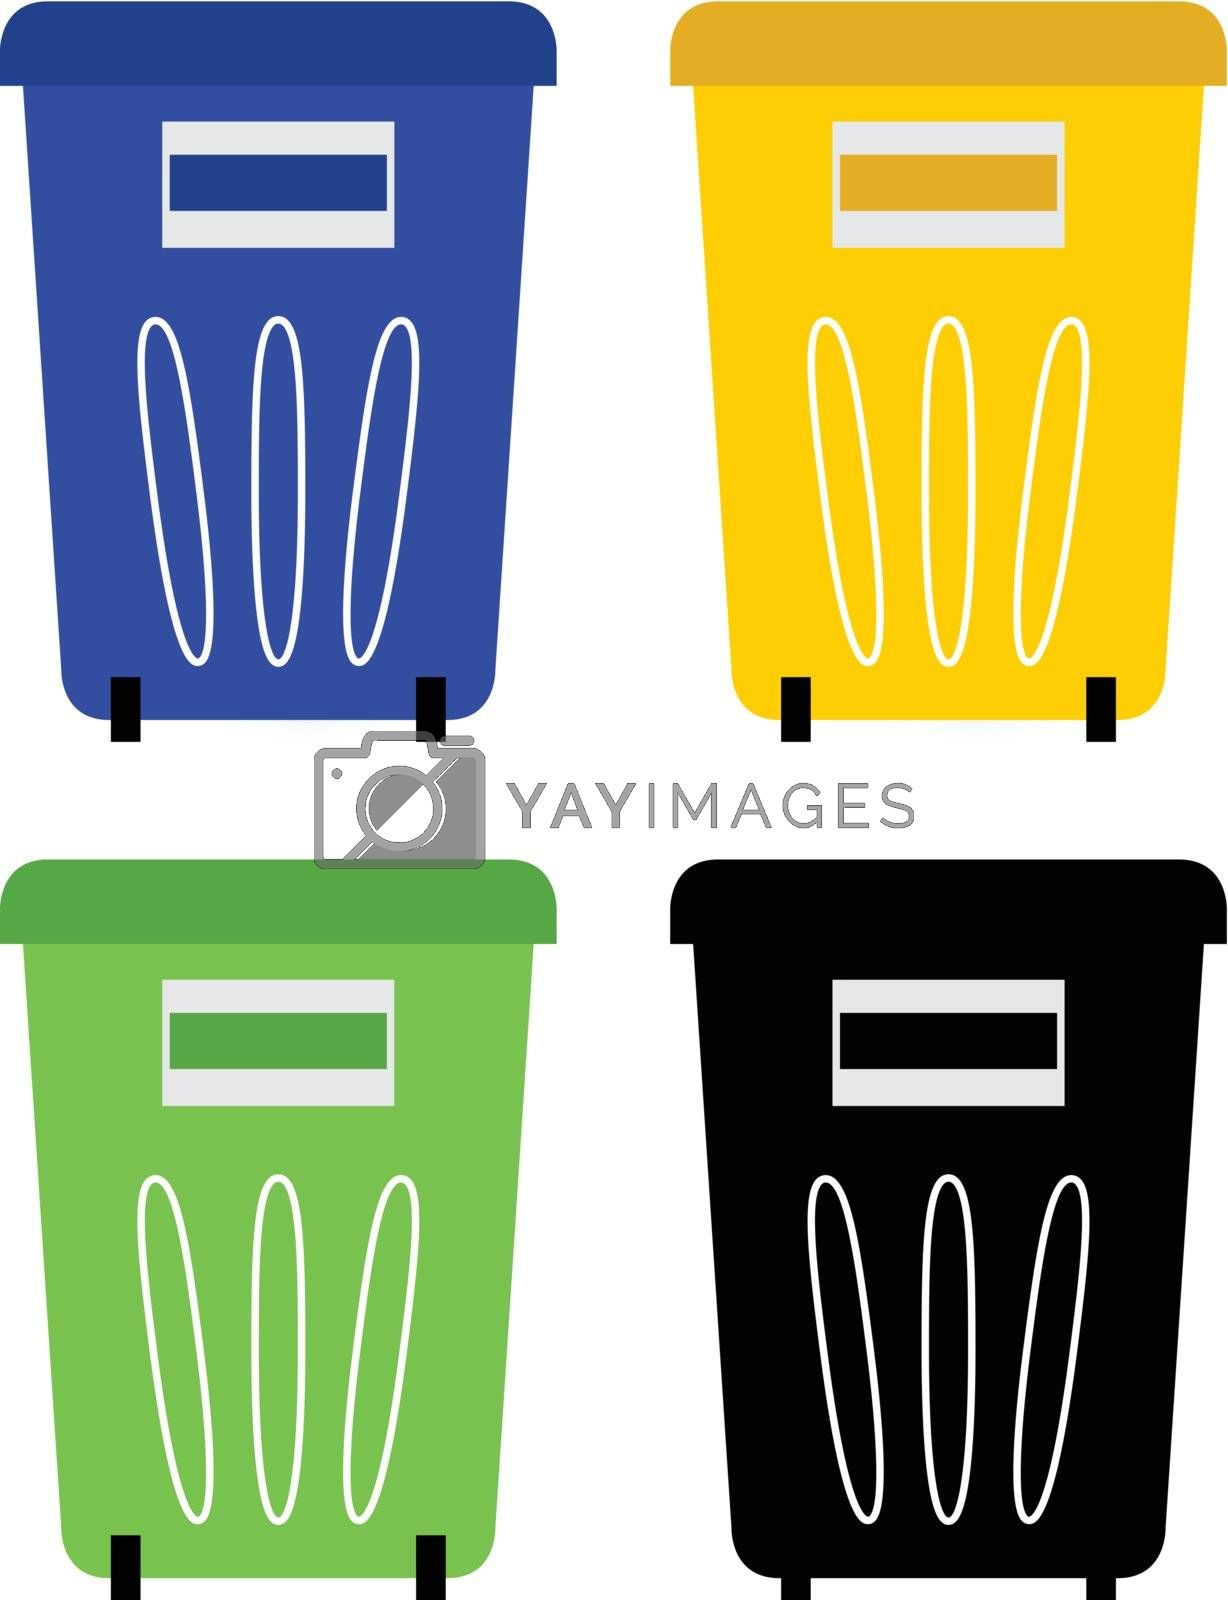 Colorful recycle bins for garbage separation. Vector